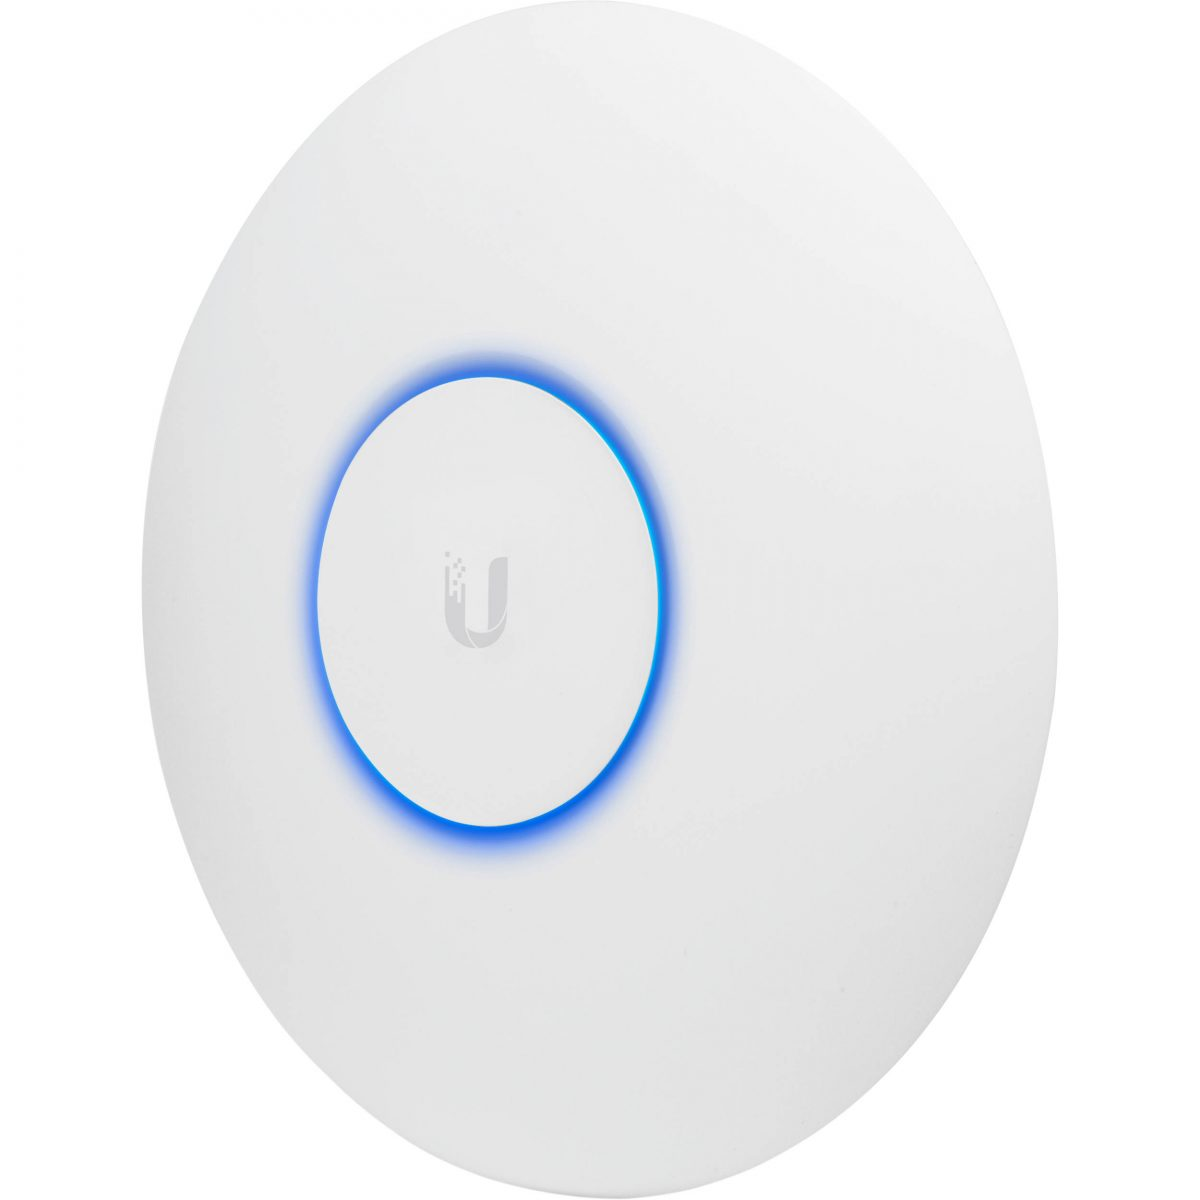 unifi-ap-ac-pro-features-weatherproof-820_1 Photo for sale in Accra Ghana Goodluck Africa Ltd